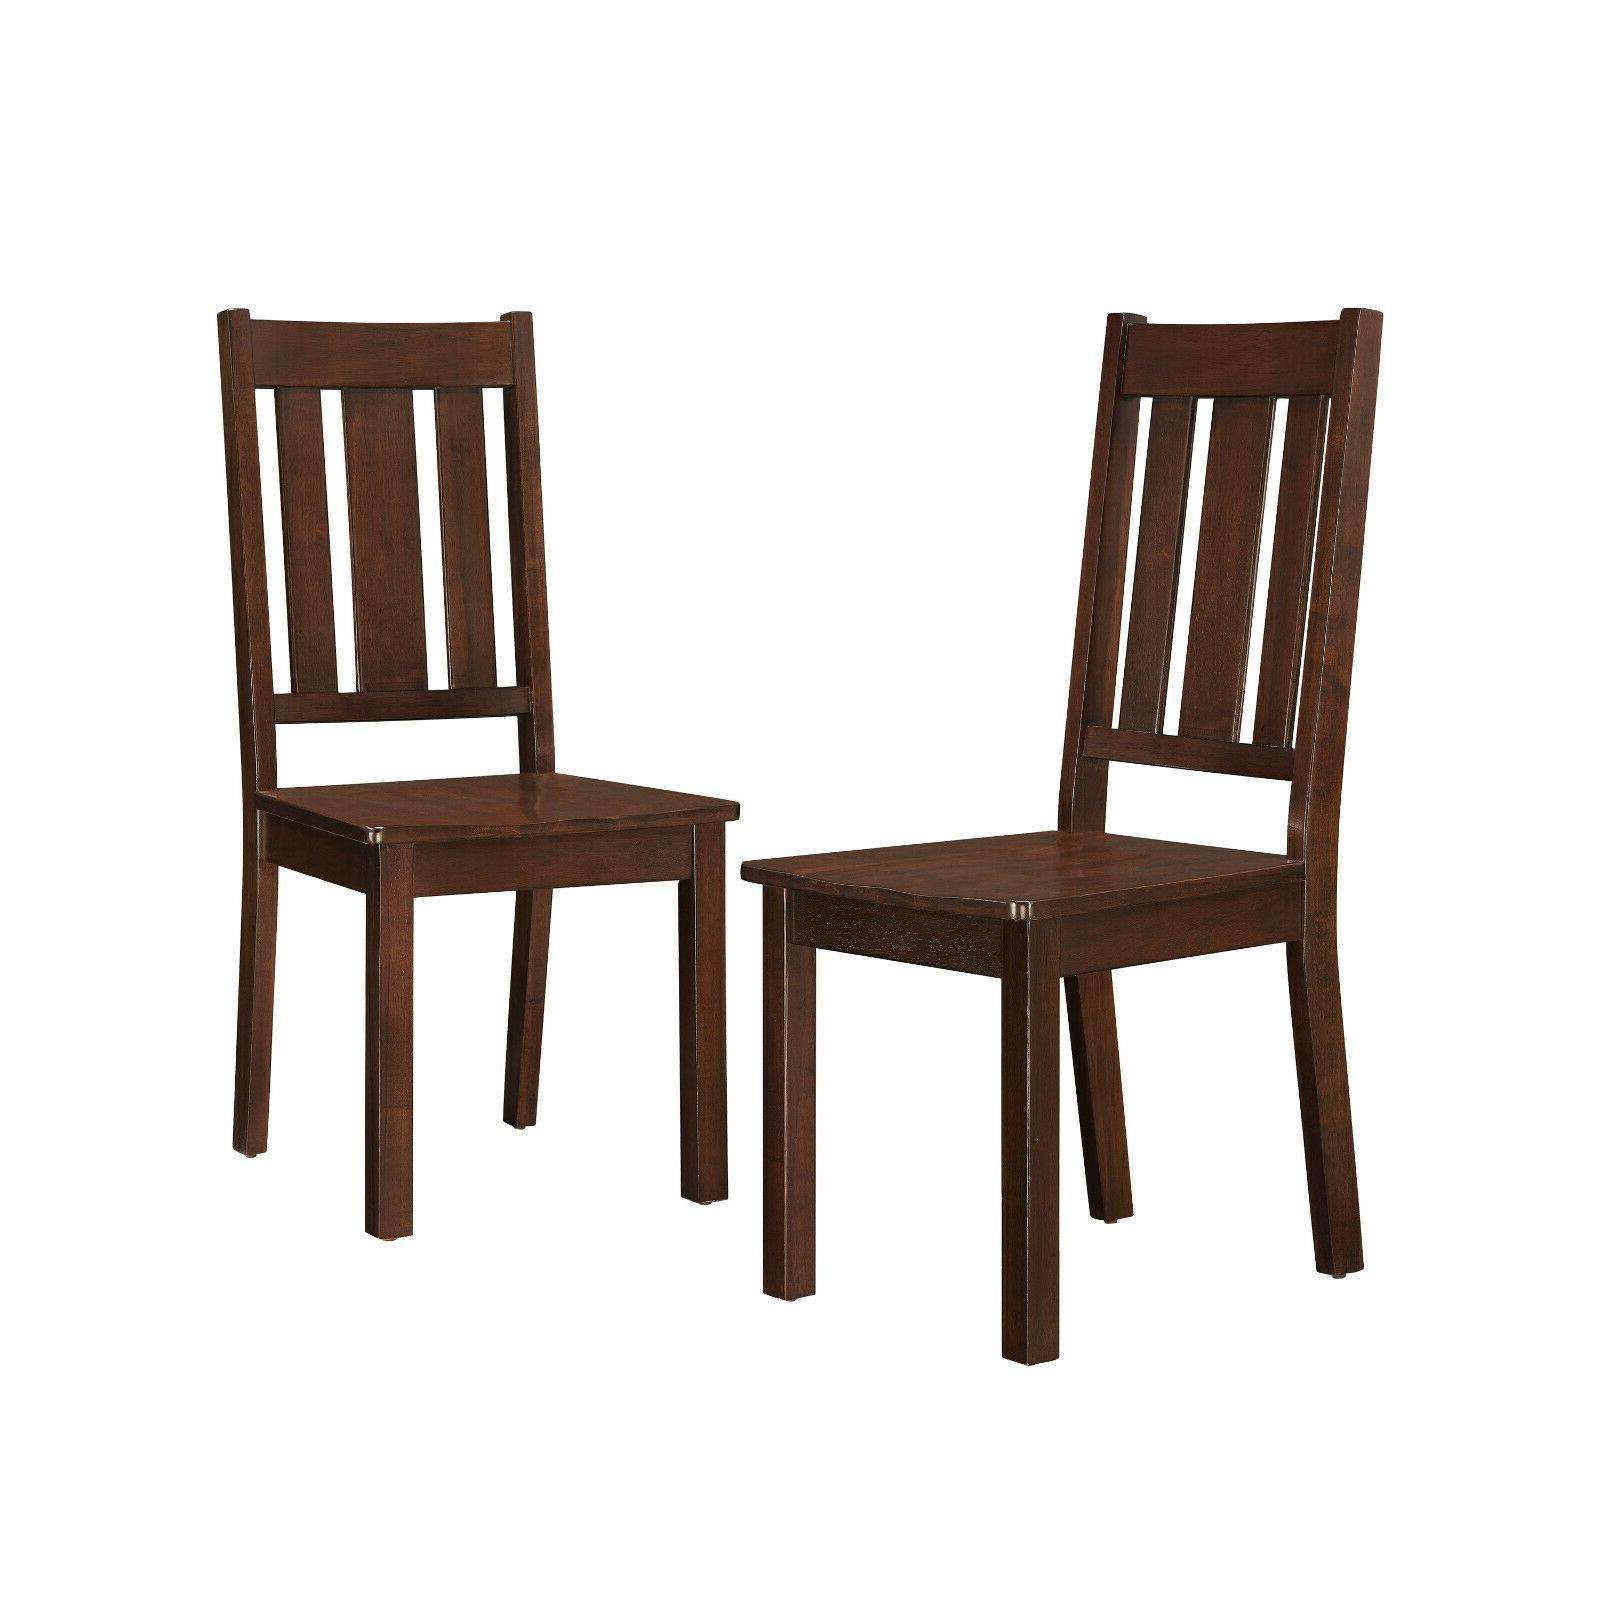 7 Table For Farmhouse Tables and Chairs